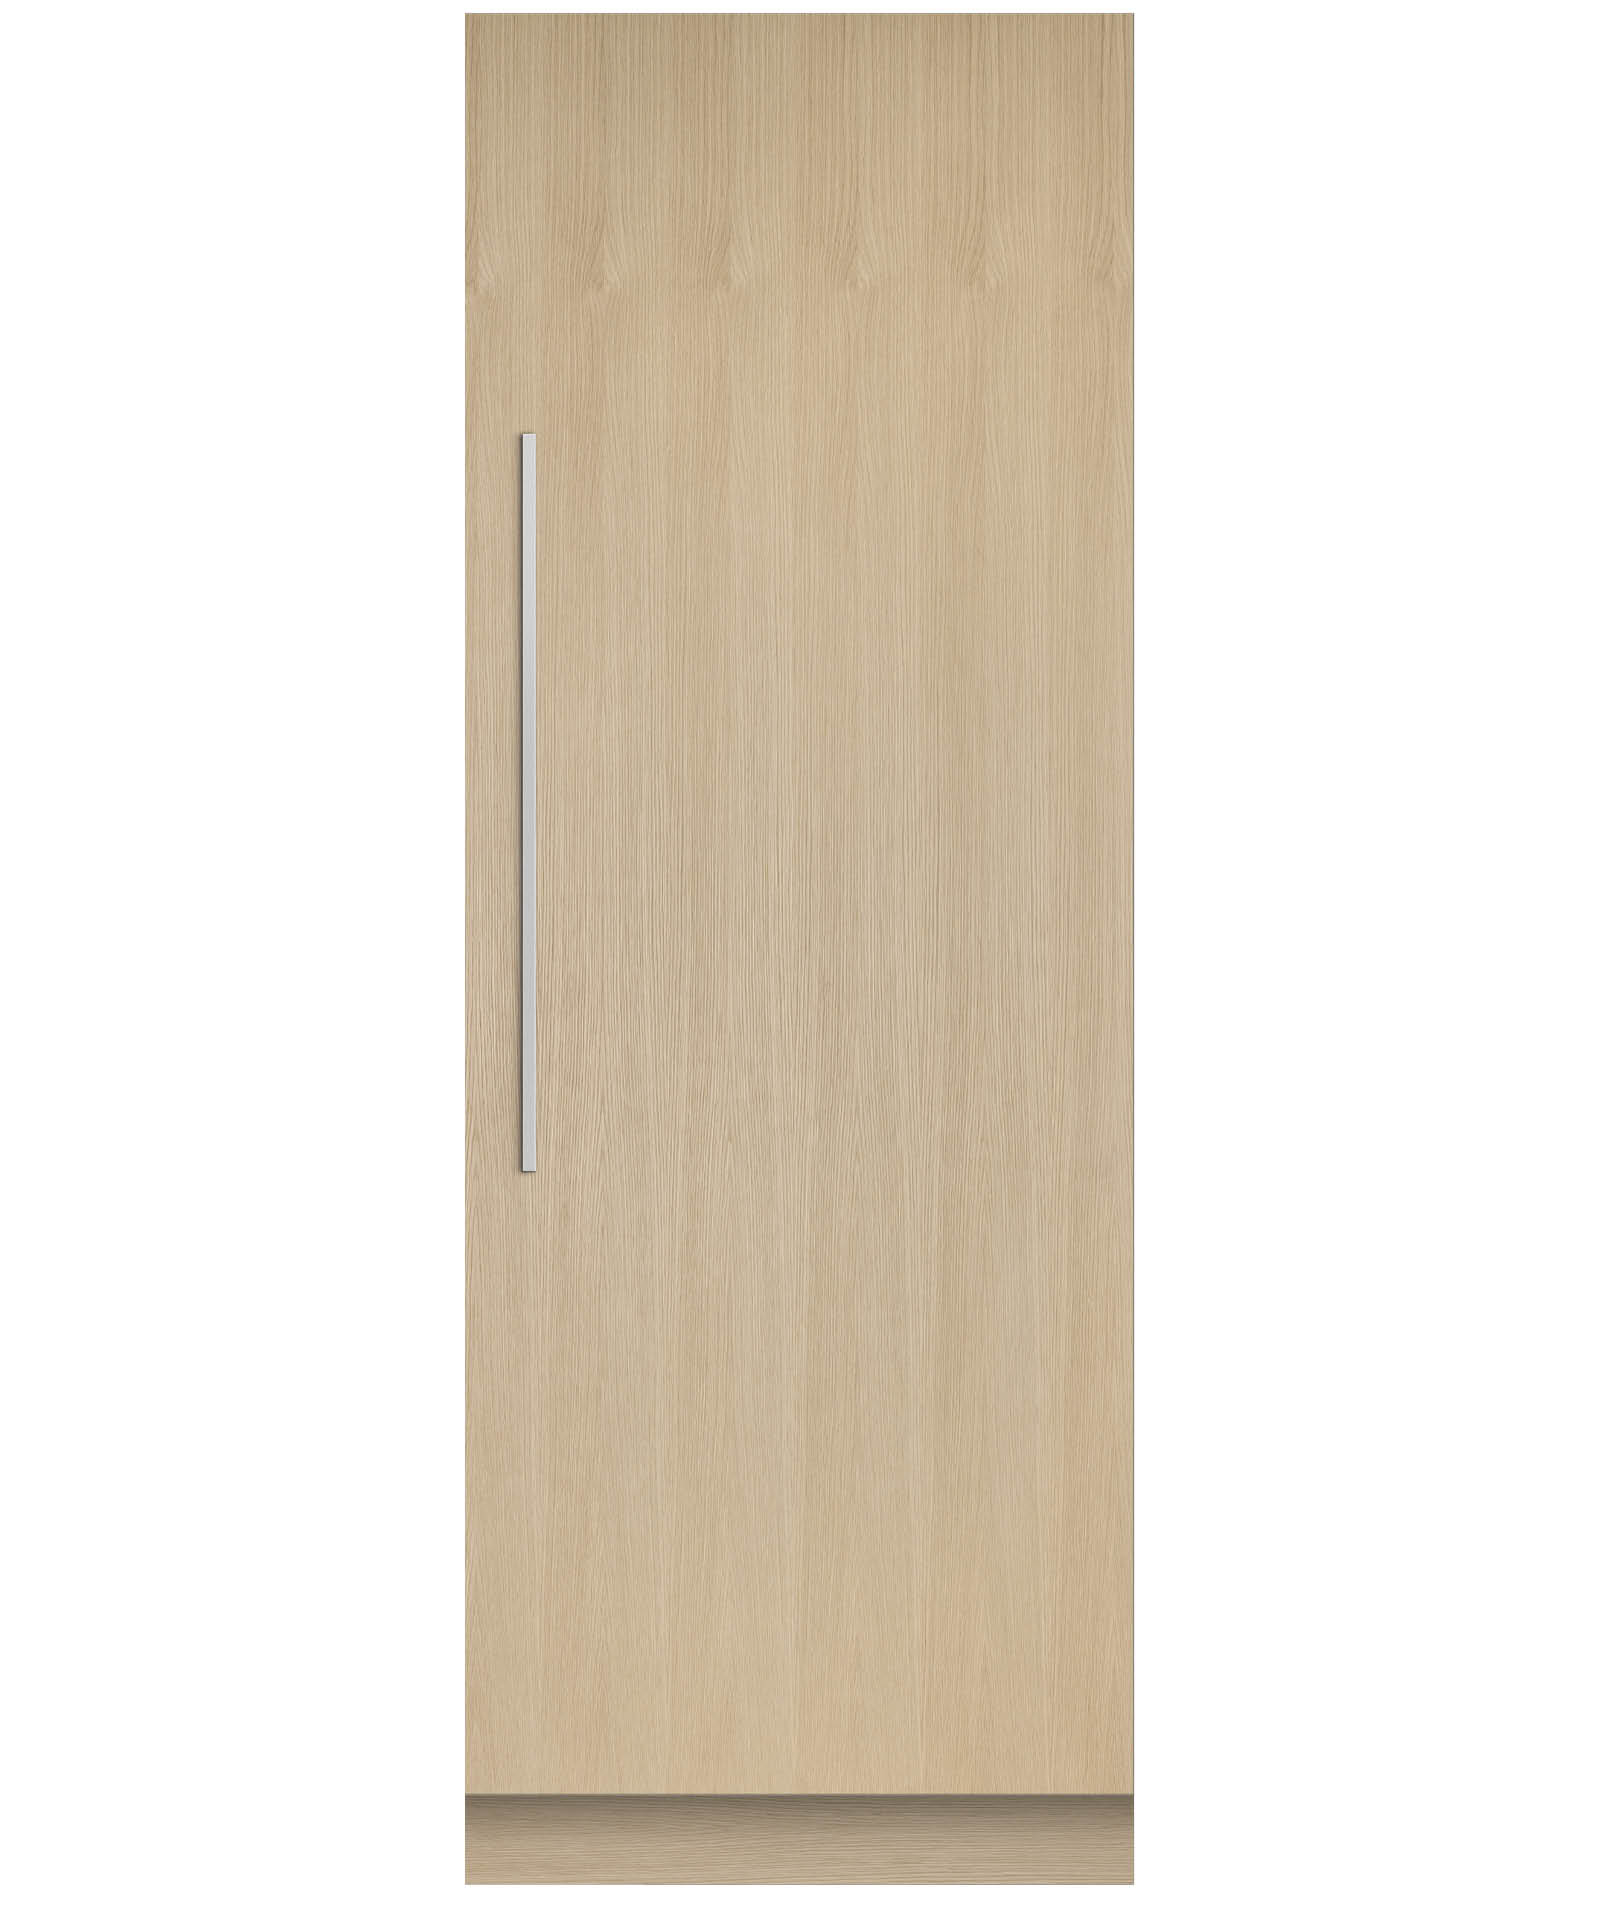 "Integrated Column Refrigerator 30"", Stainless Steel Interior"